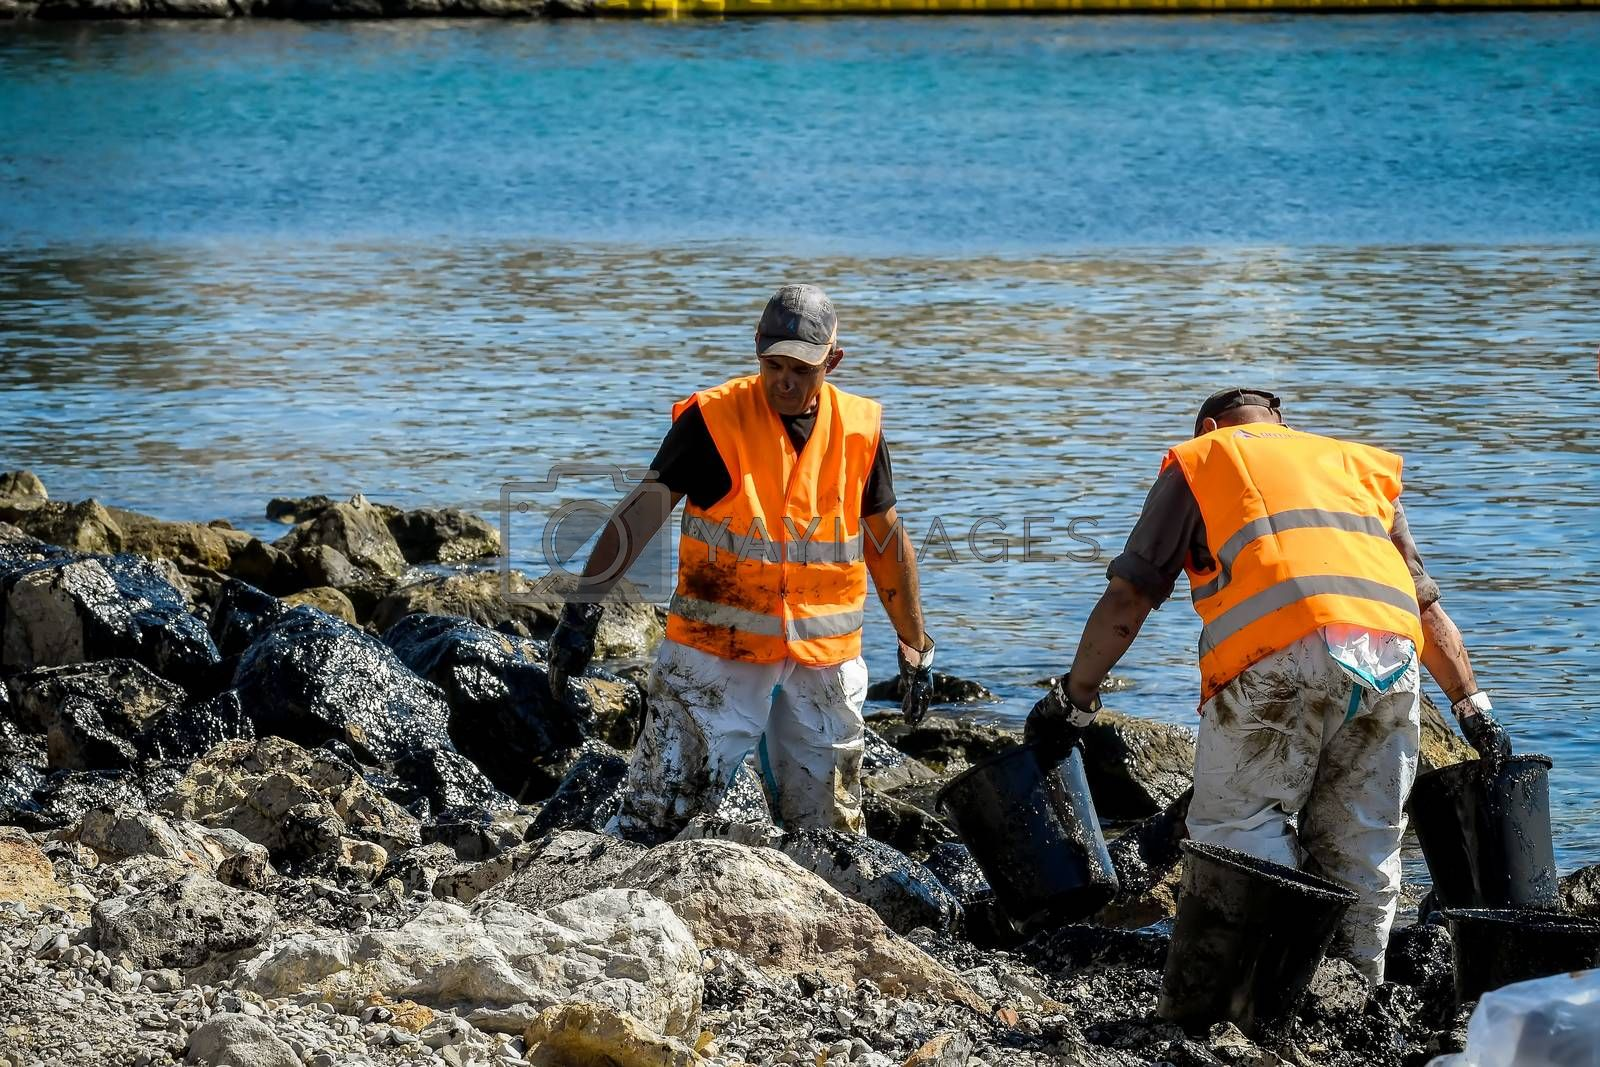 Salamis, Athens, Greece - Sept 13, 2017: Workers try to clean up oil that has washed ashore, on a beach of Salamis island near Athens, after an old tanker sank close to Salamis island